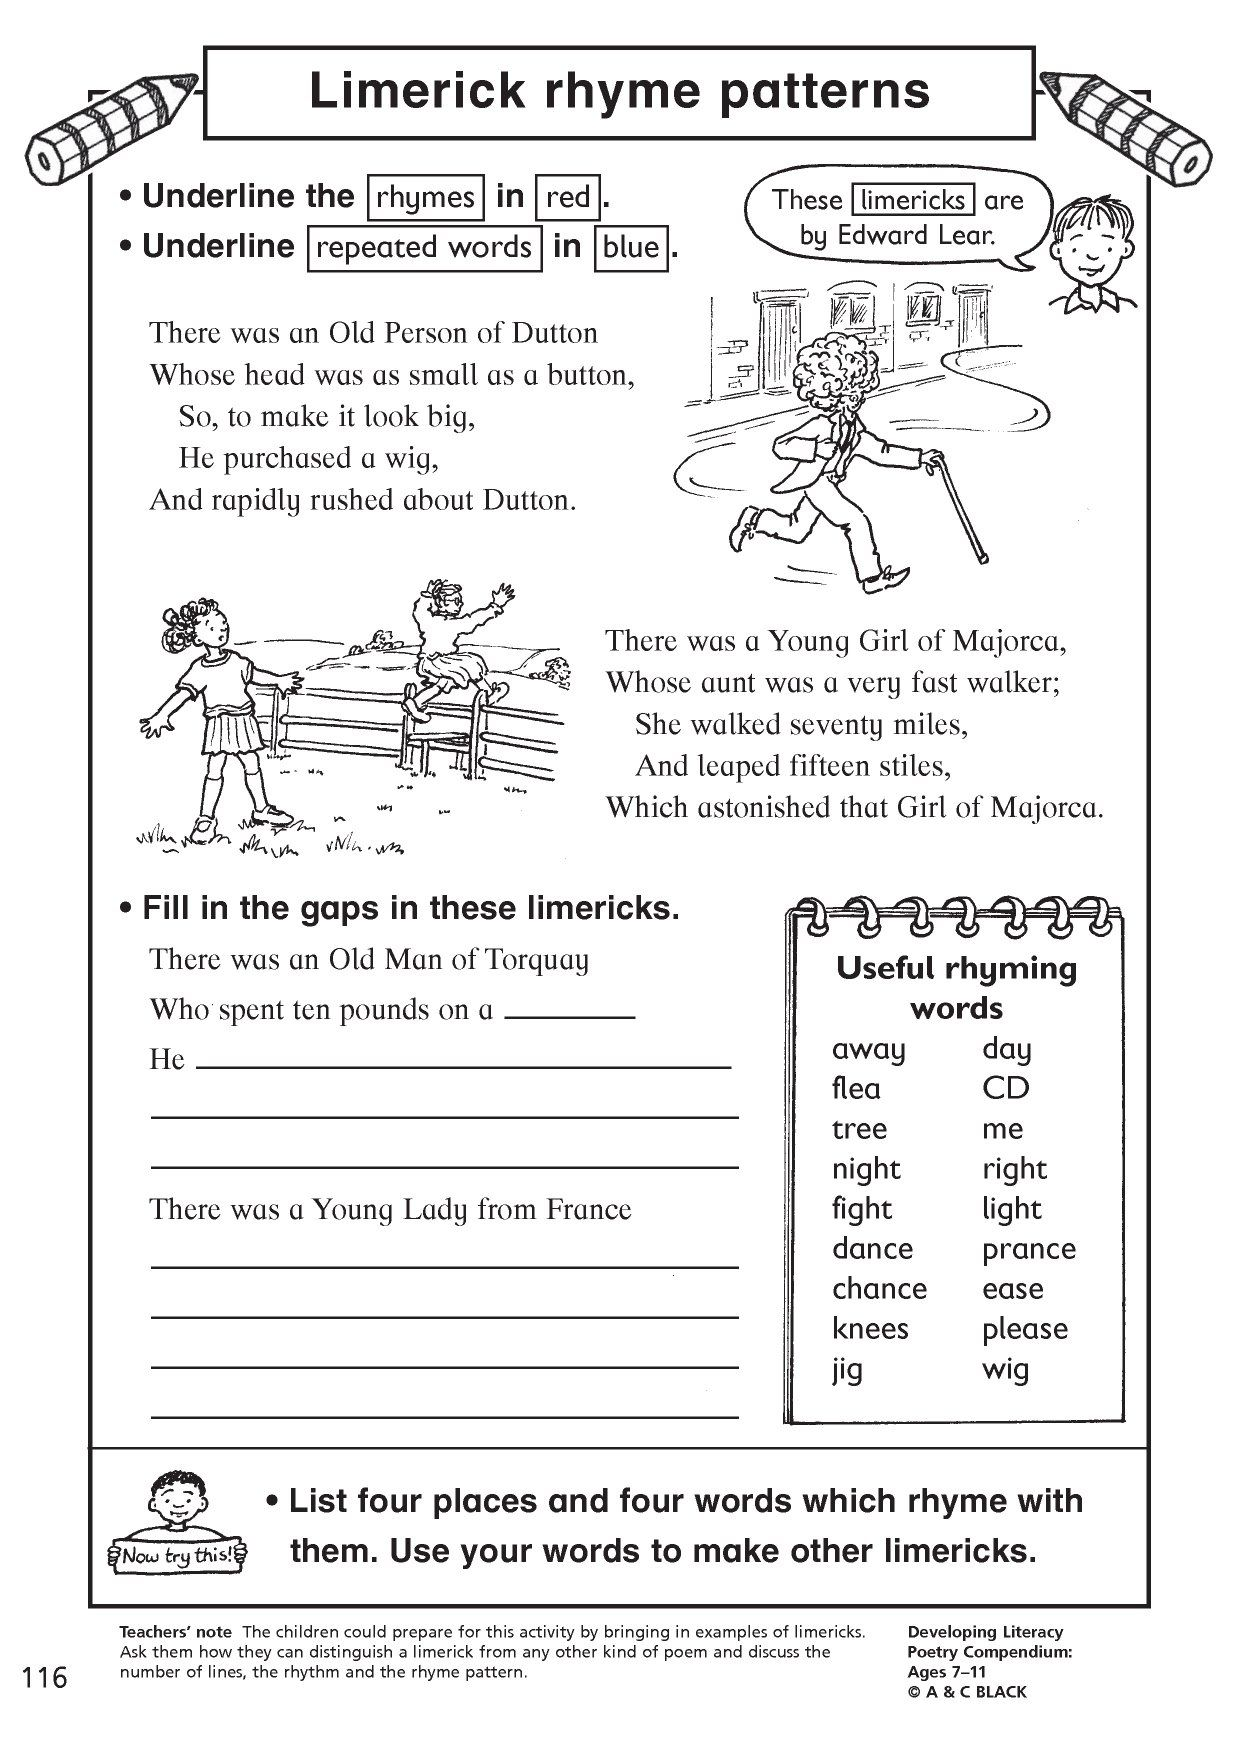 medium resolution of Limerick Writing Worksheet   Printable Worksheets and Activities for  Teachers